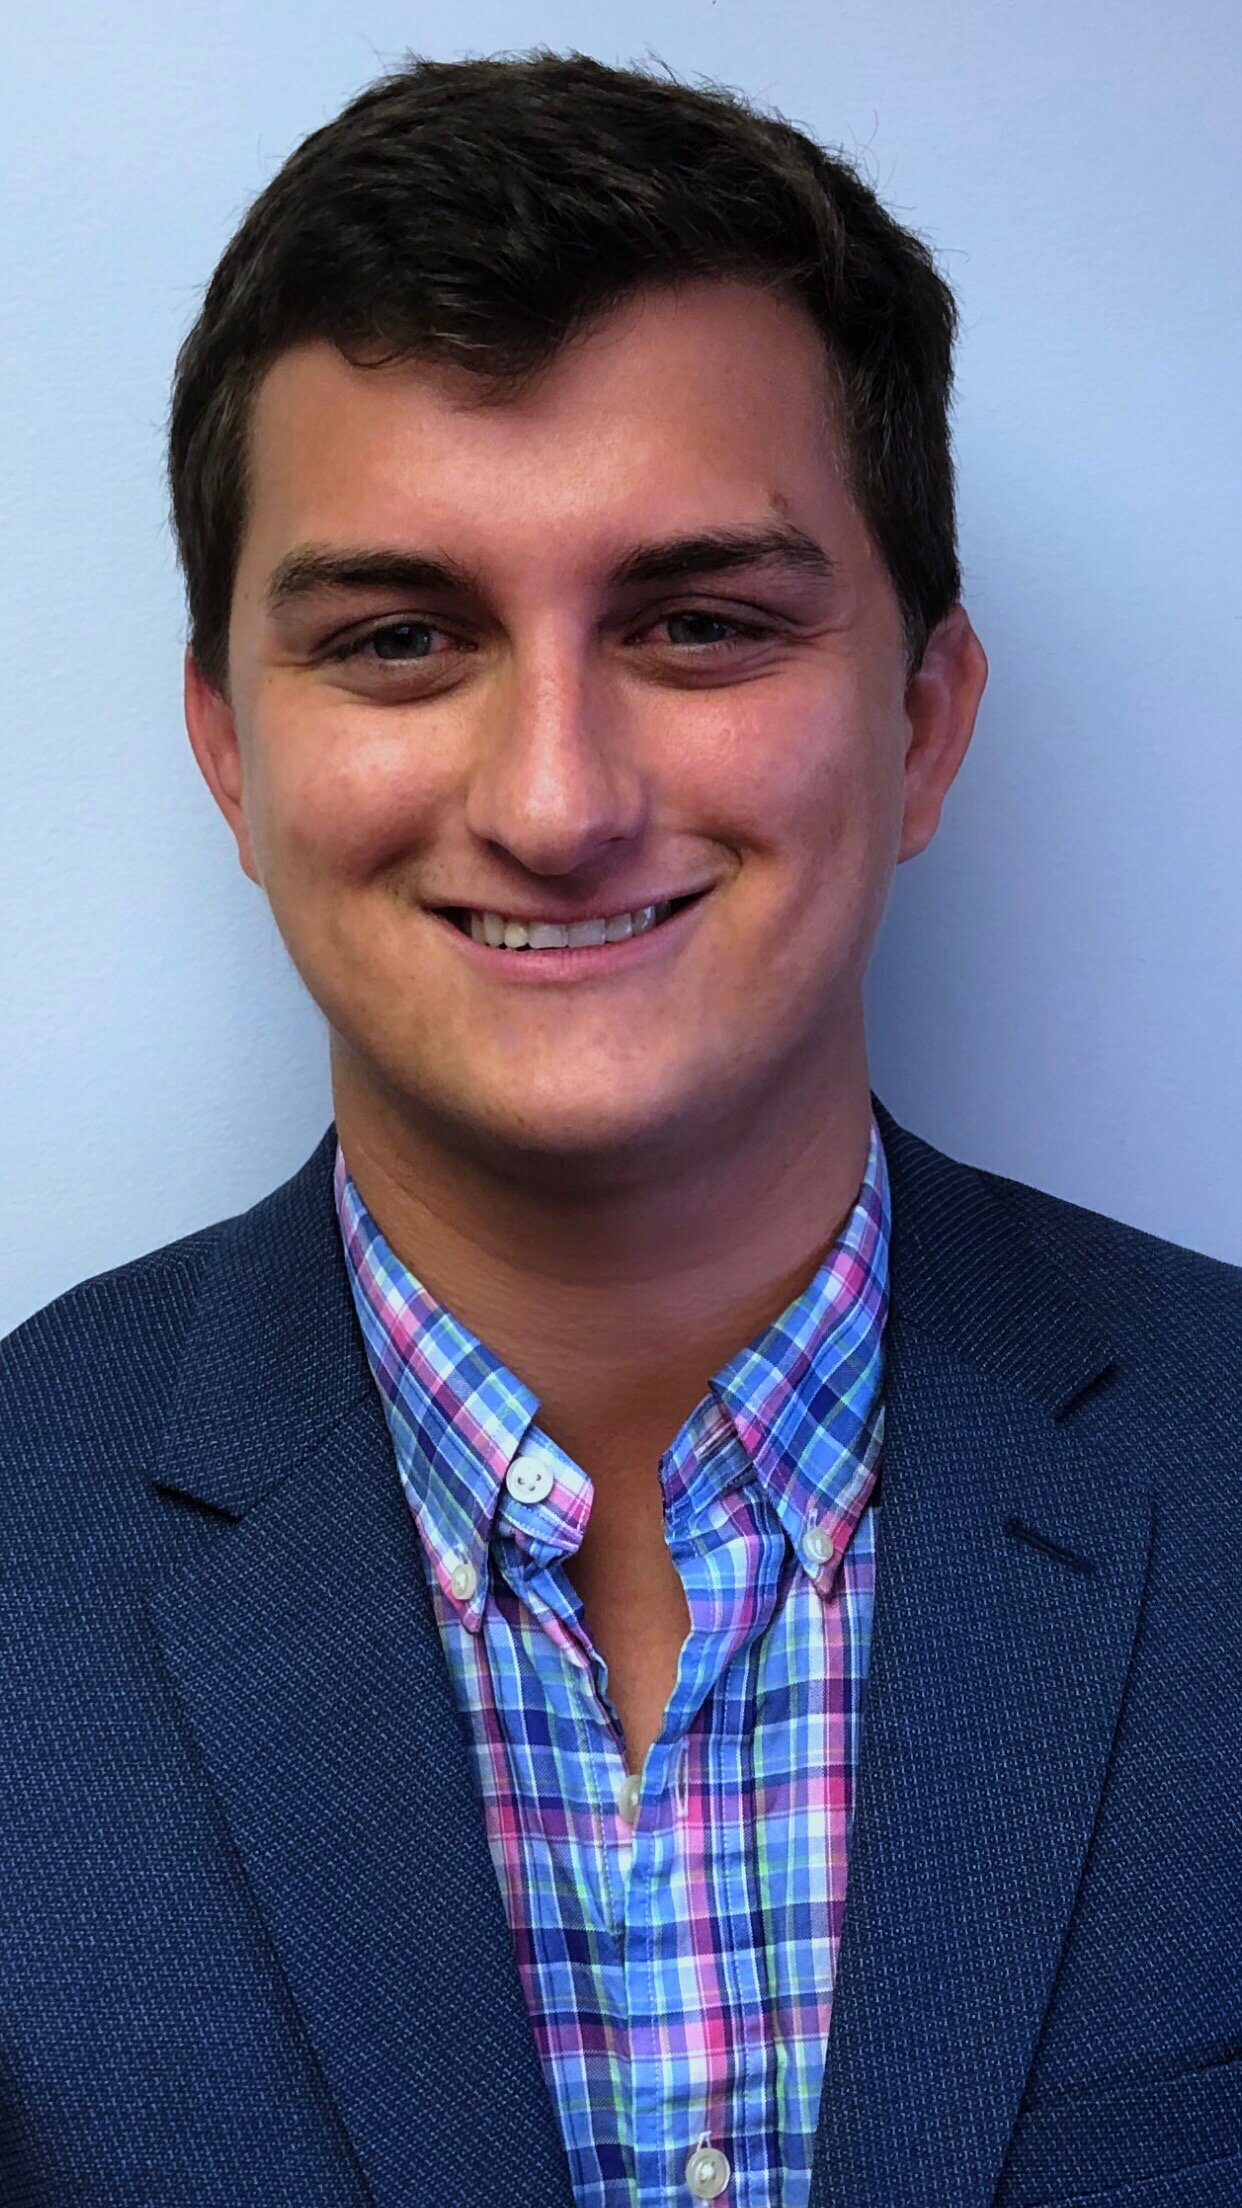 JUSTIN KEITH, PRMG TYSONS BRANCH MANAGER